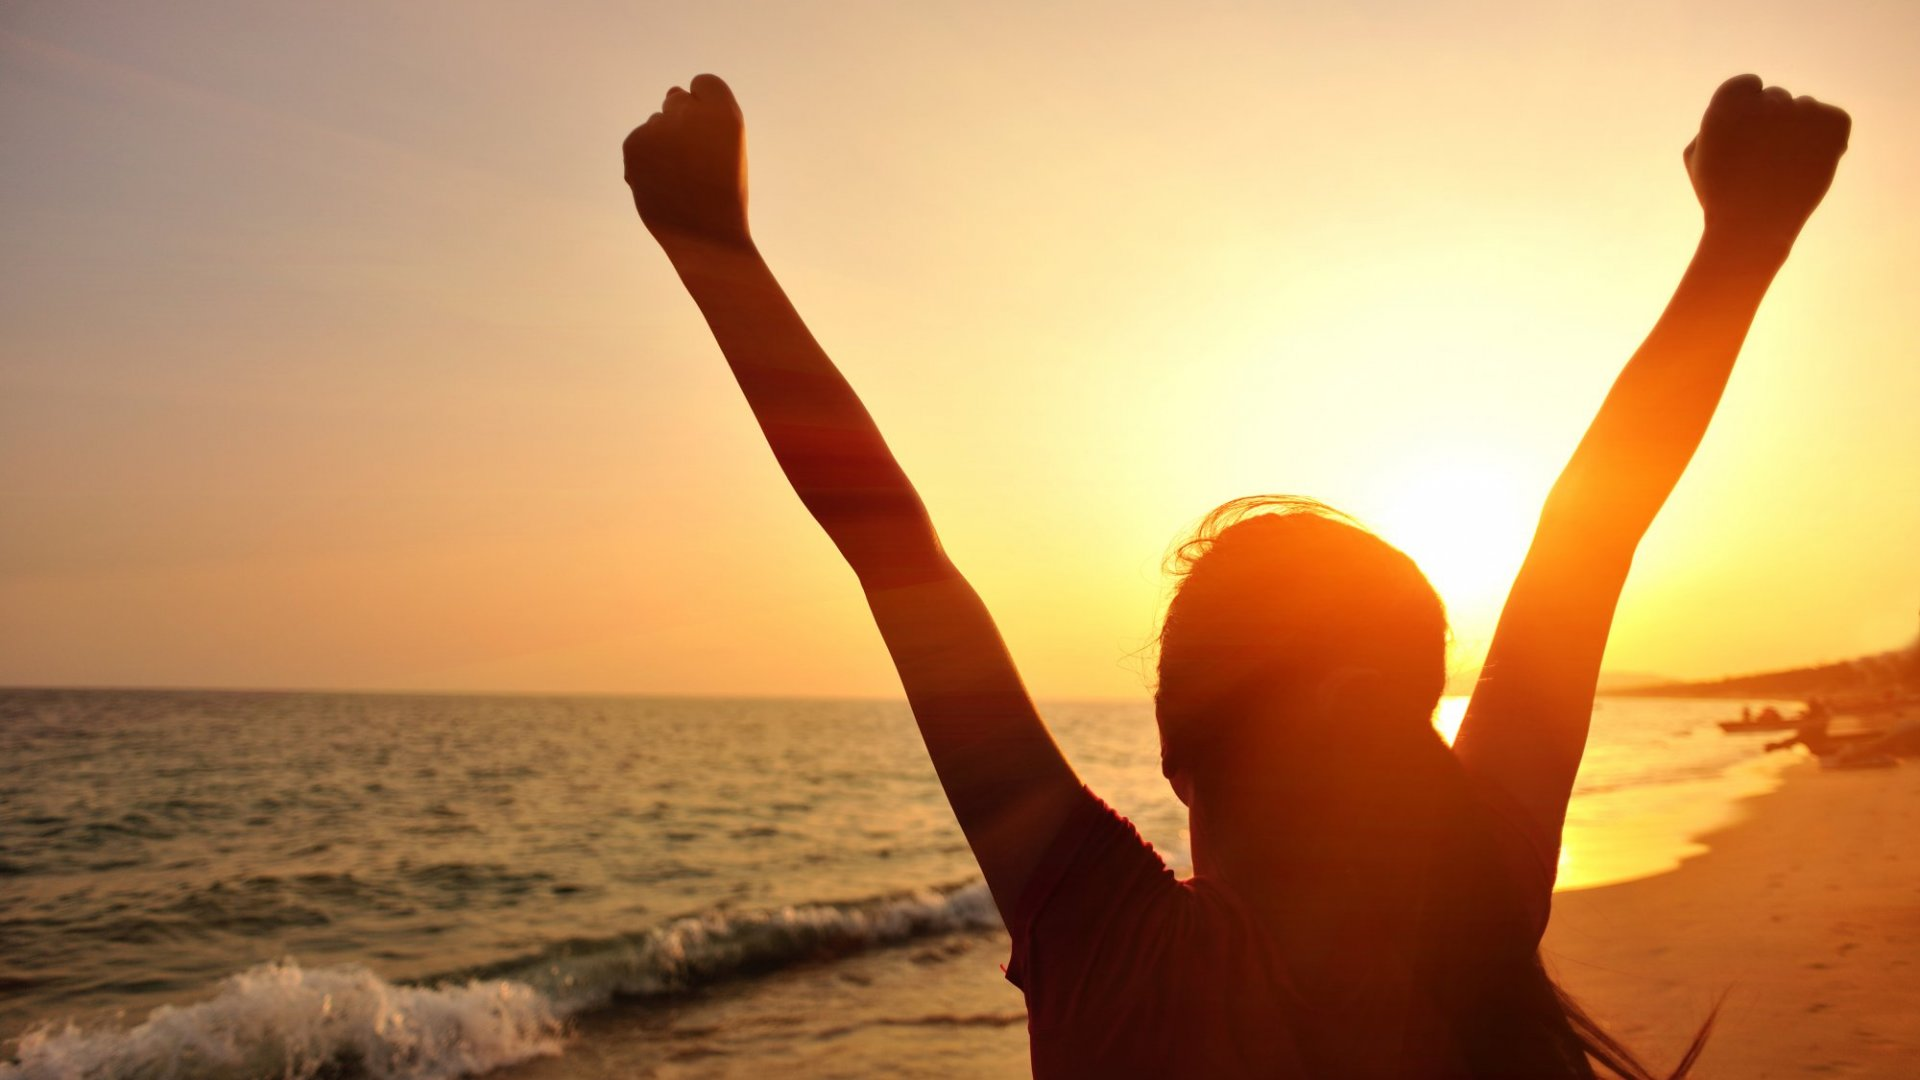 8 Powerful Signs That You're Successful (Even If You Don't Think So)